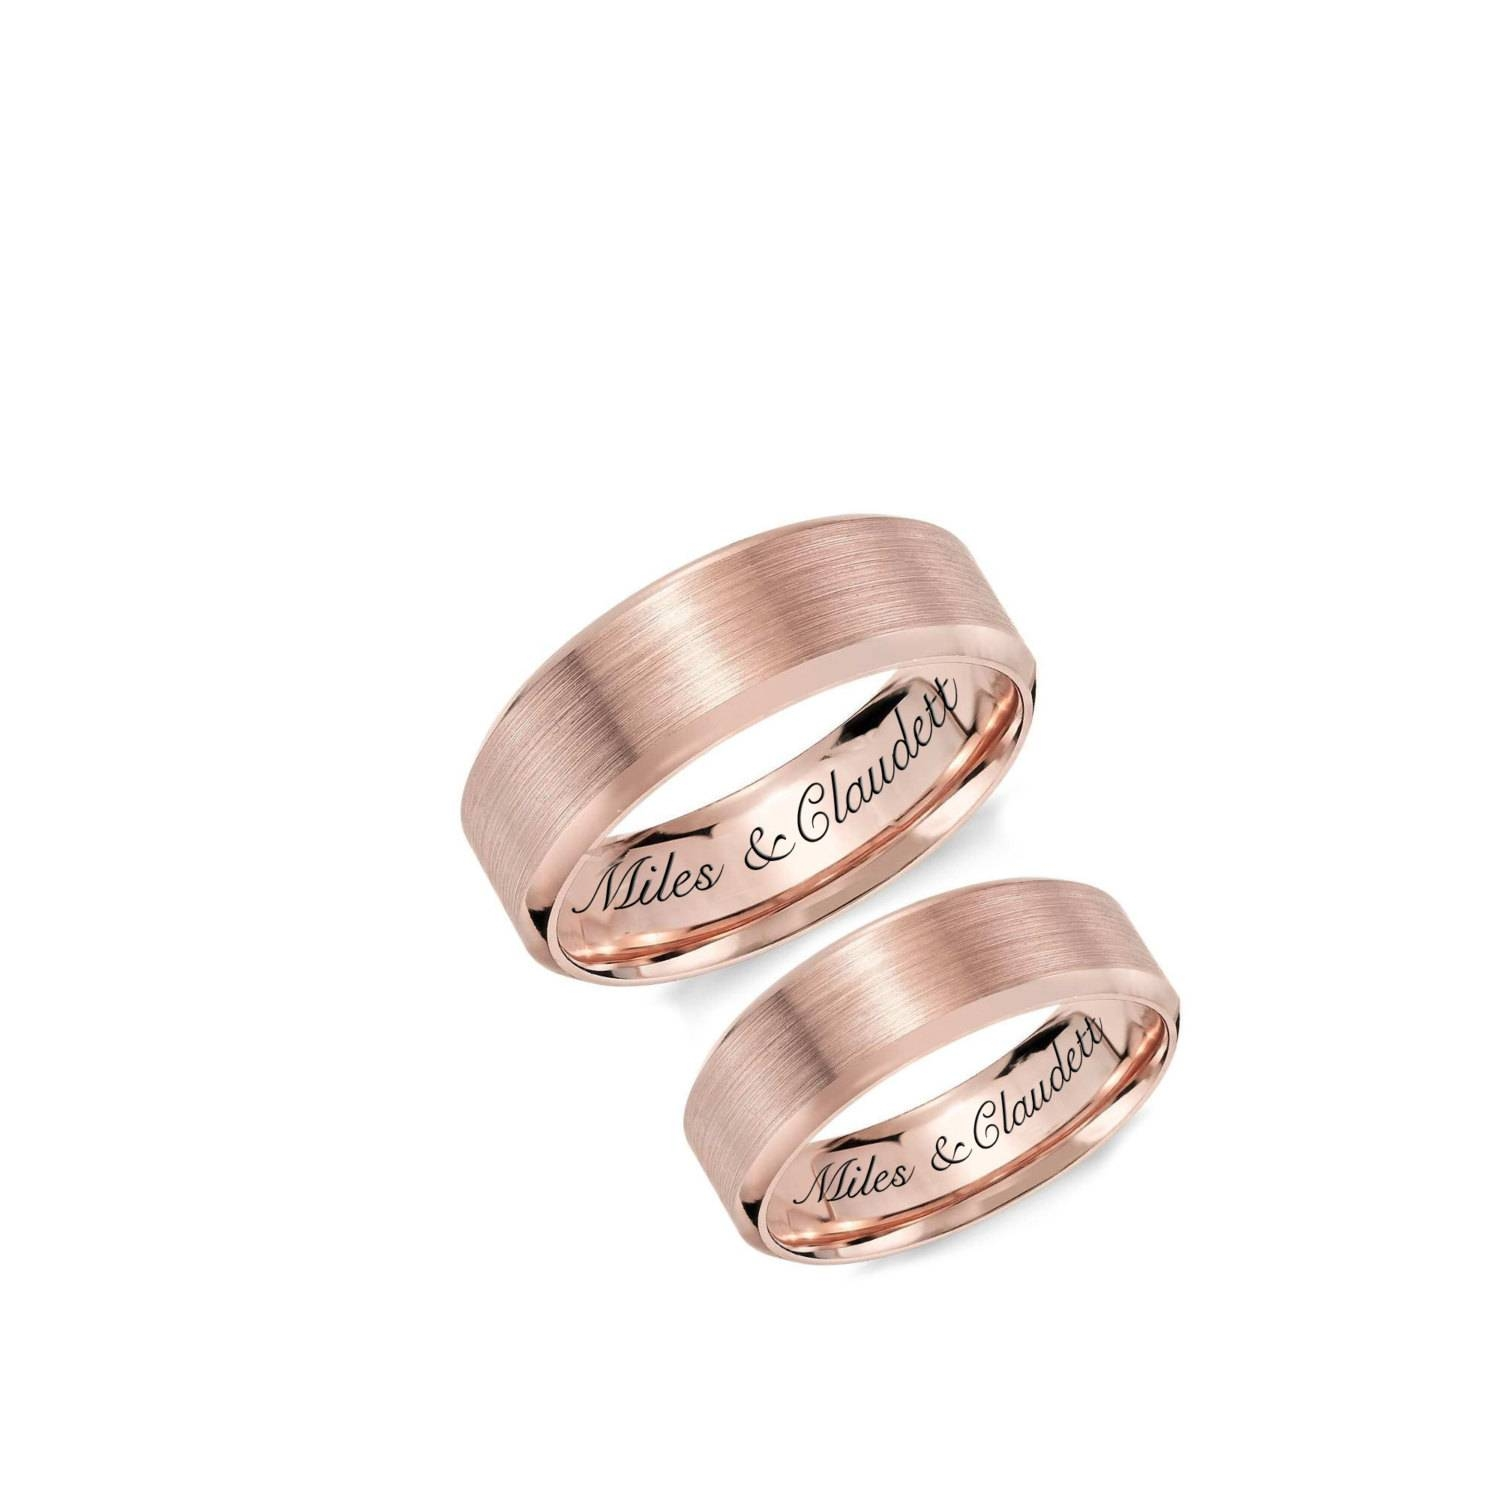 Personalized Rings Engraved Rings Rose Gold Ring Set In Best And Newest Rose Gold Anniversary Rings (View 17 of 25)